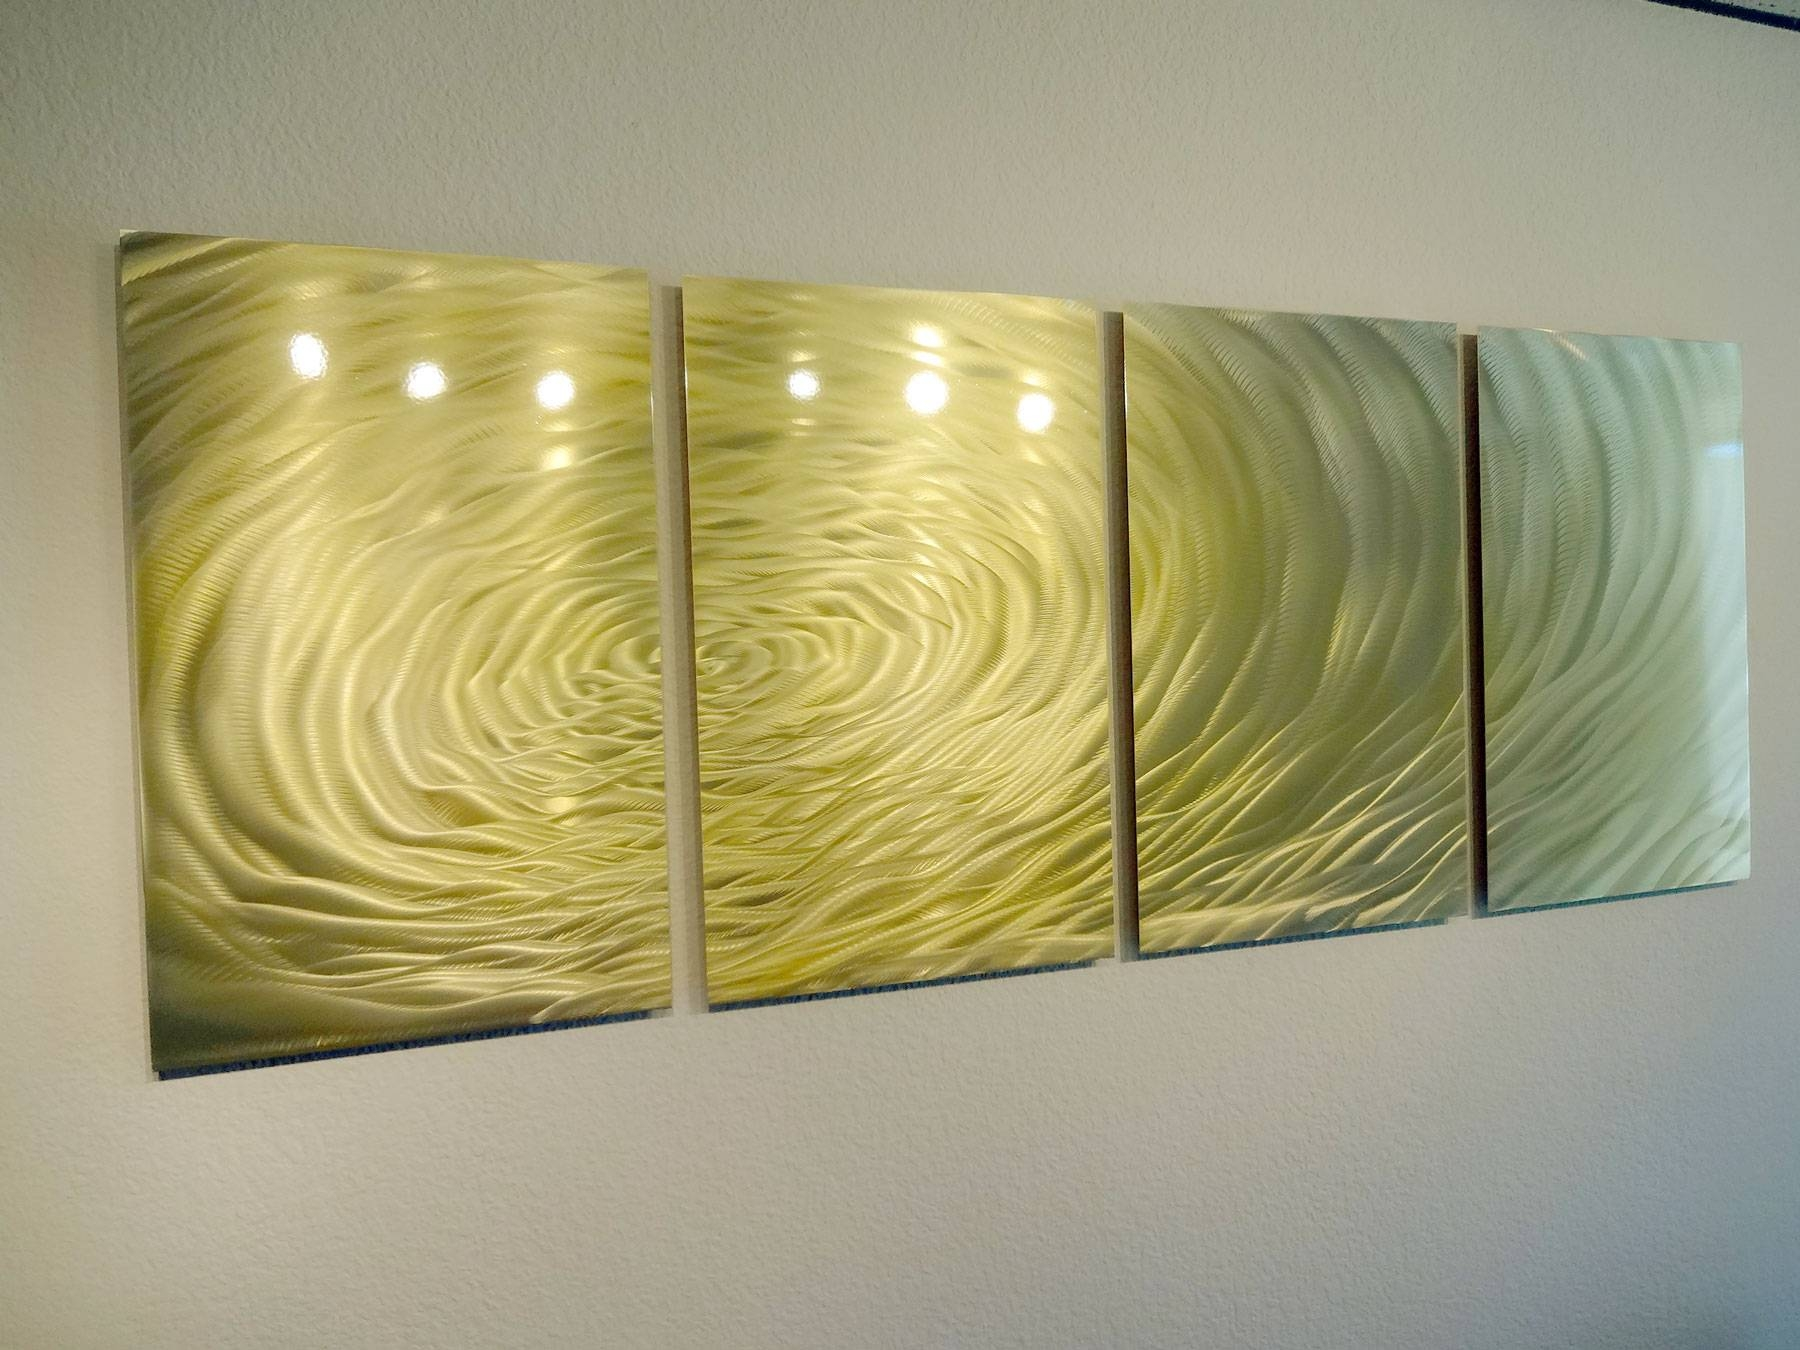 Gold Ripple  Metal Wall Art Abstract Contemporary Modern Decor With Regard To Most Up To Date Modern Metal Wall Art Decors (View 4 of 20)